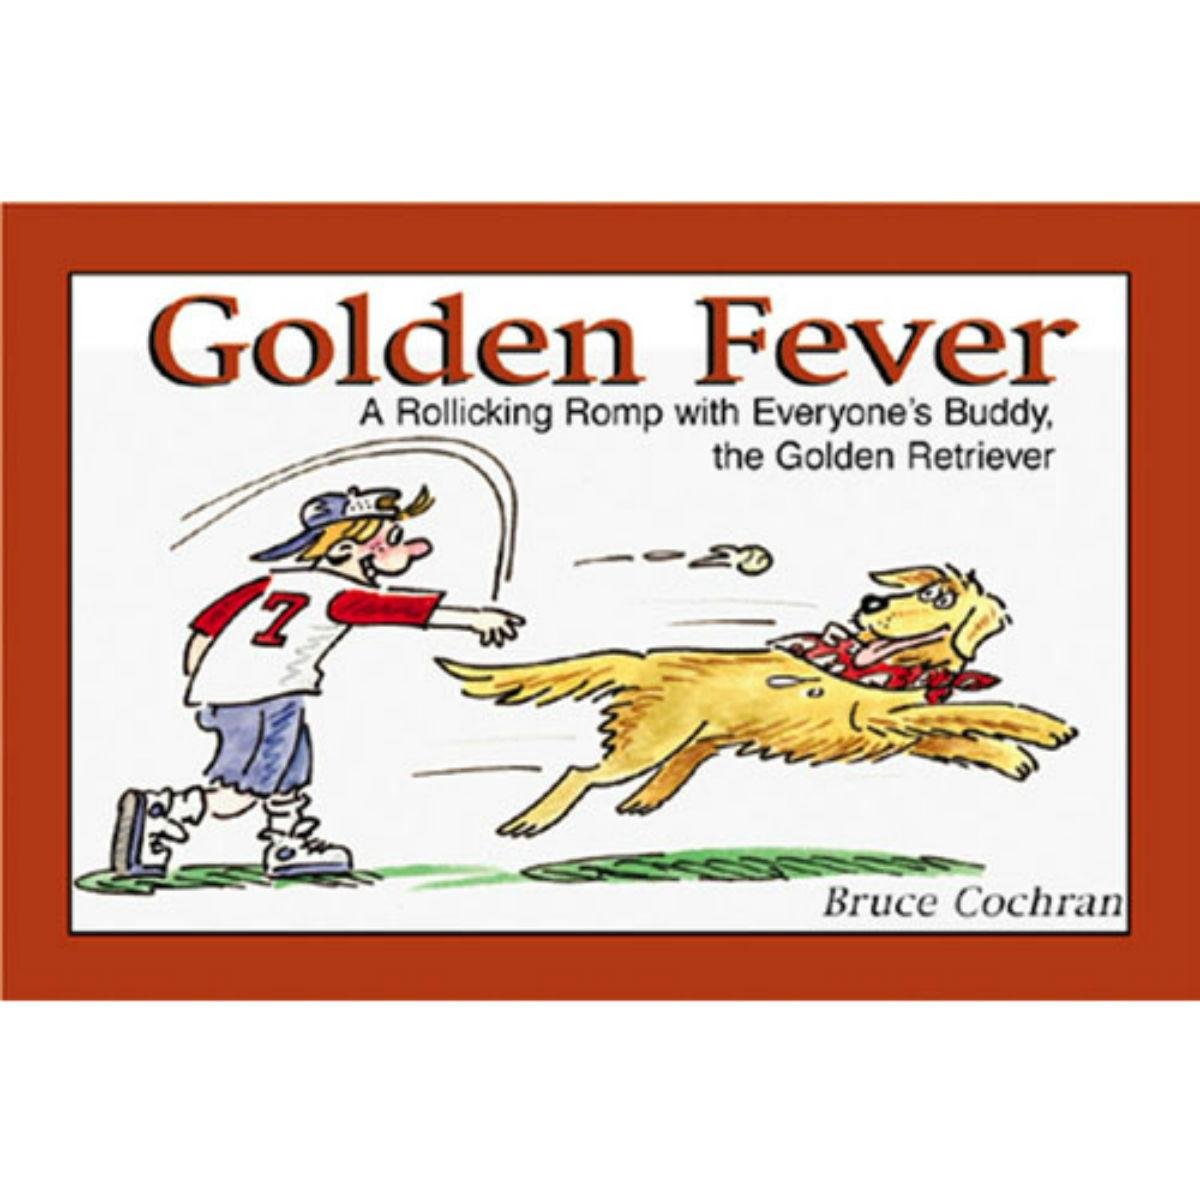 Golden Fever Book for Humans; A Rollicking Romp with Everyone's Buddy, the Golden Retriever